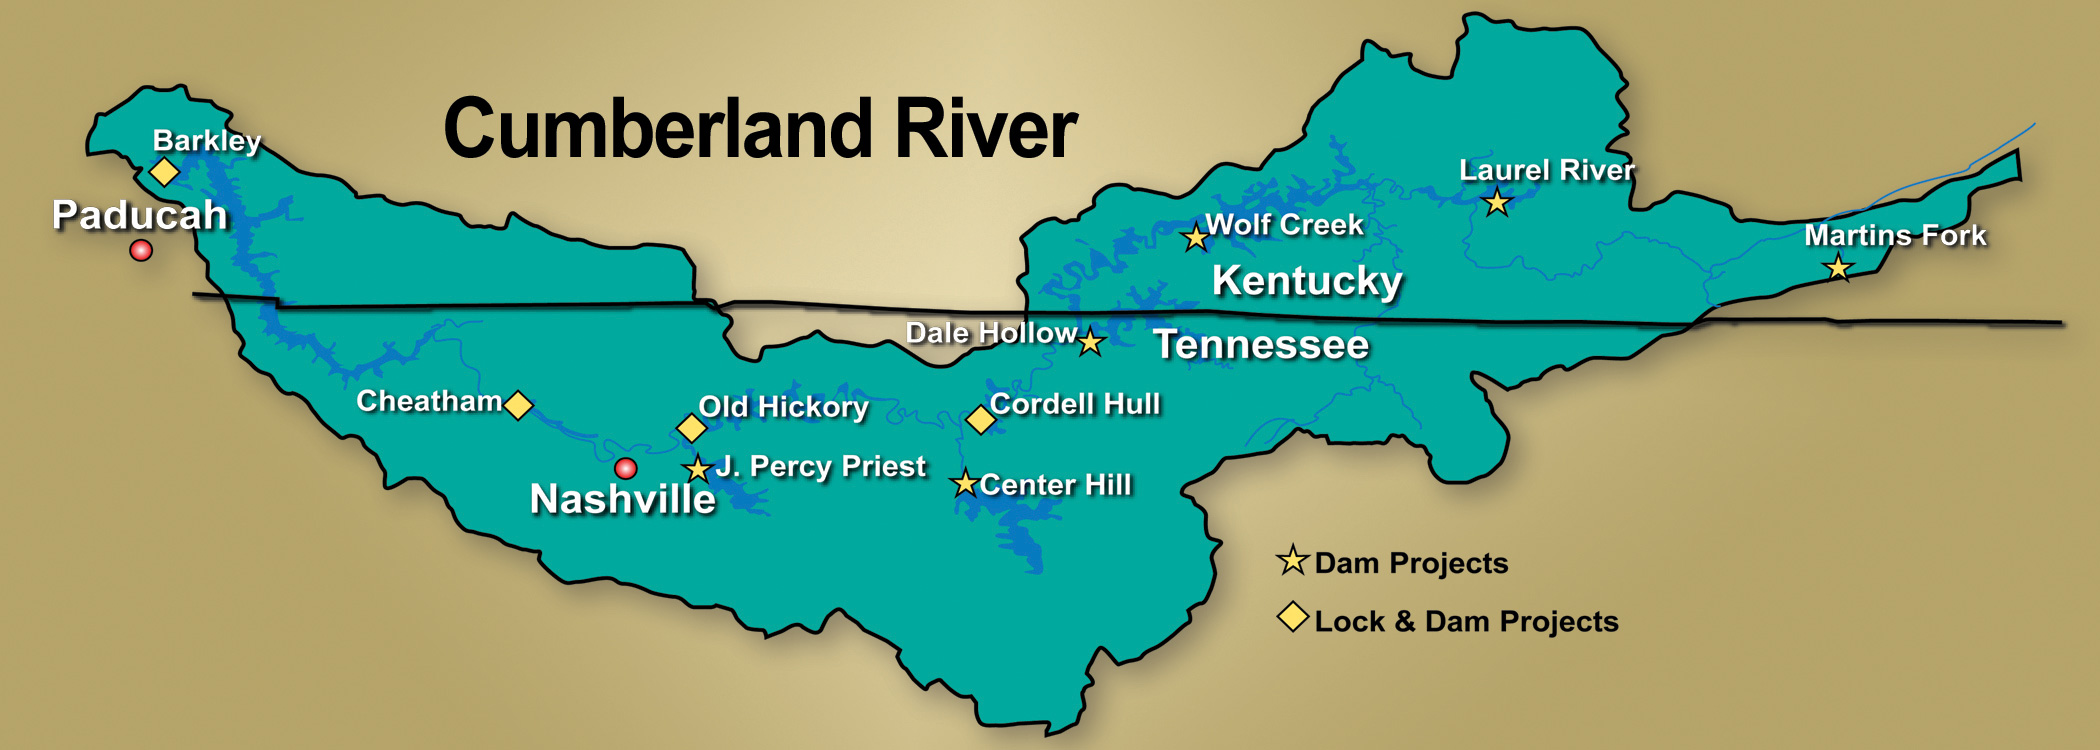 Cumberland River Basin Projects